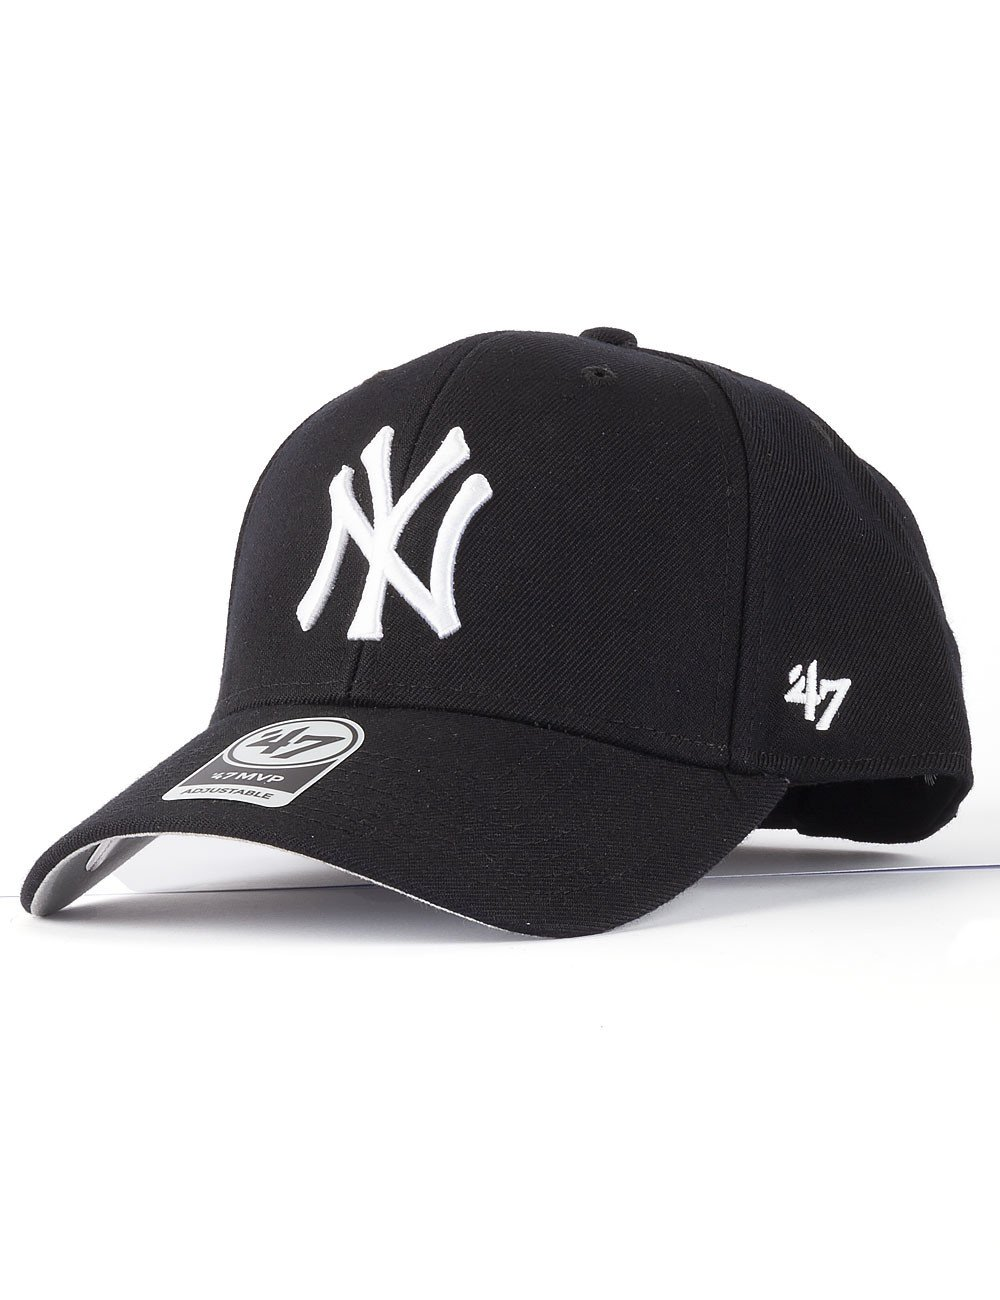 '47 New york yankees mvp MVP17WBV-BK